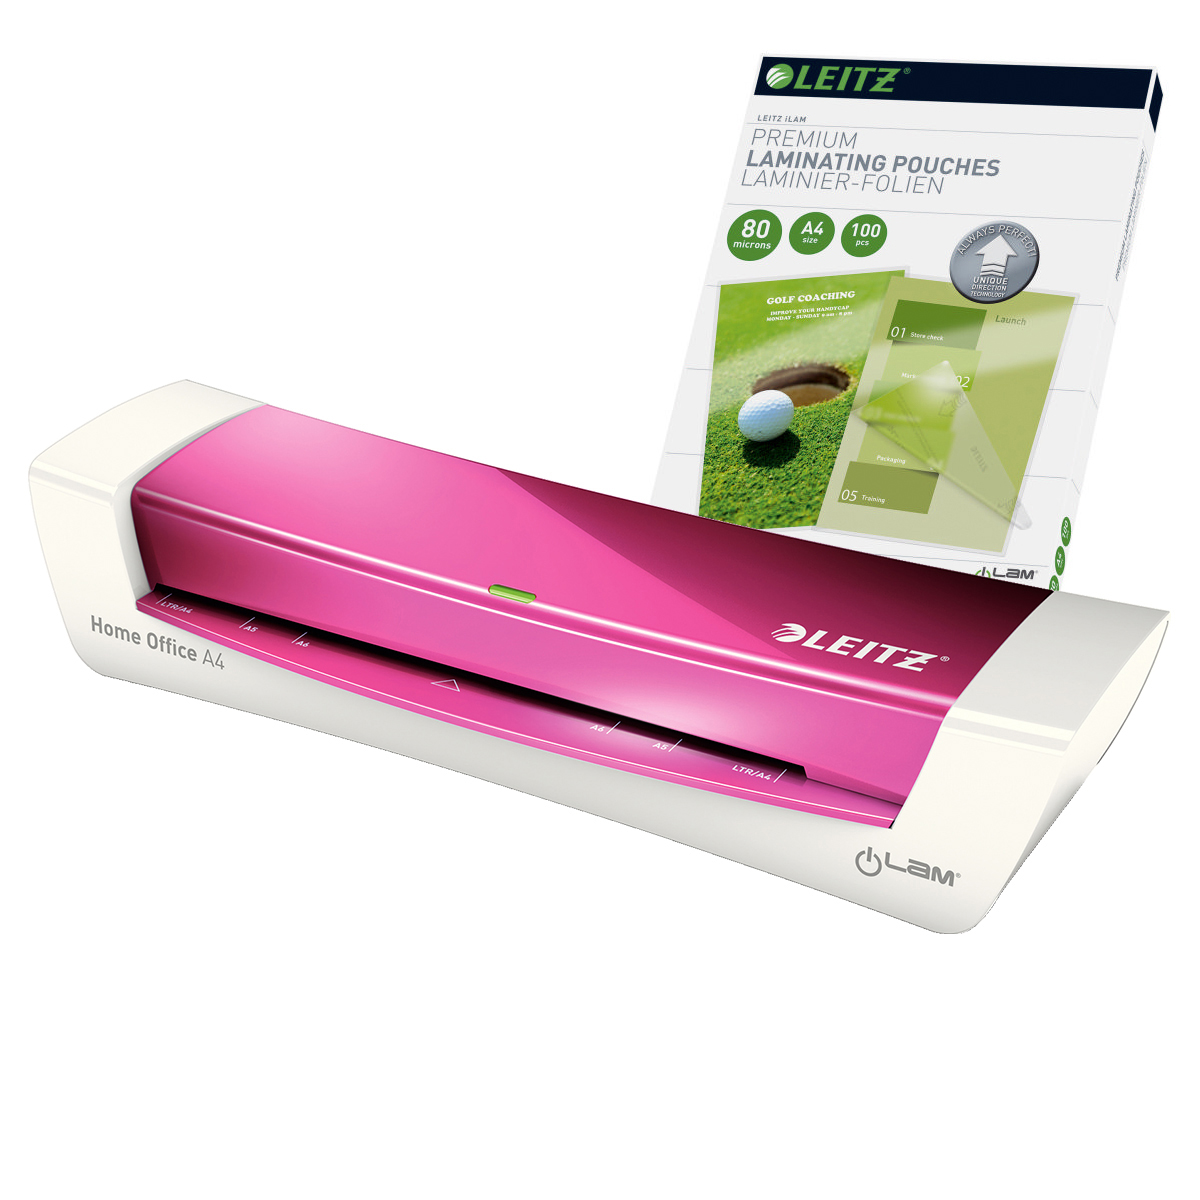 Leitz iLAM Home Office A4 Pink Laminator and Pouches Bundle